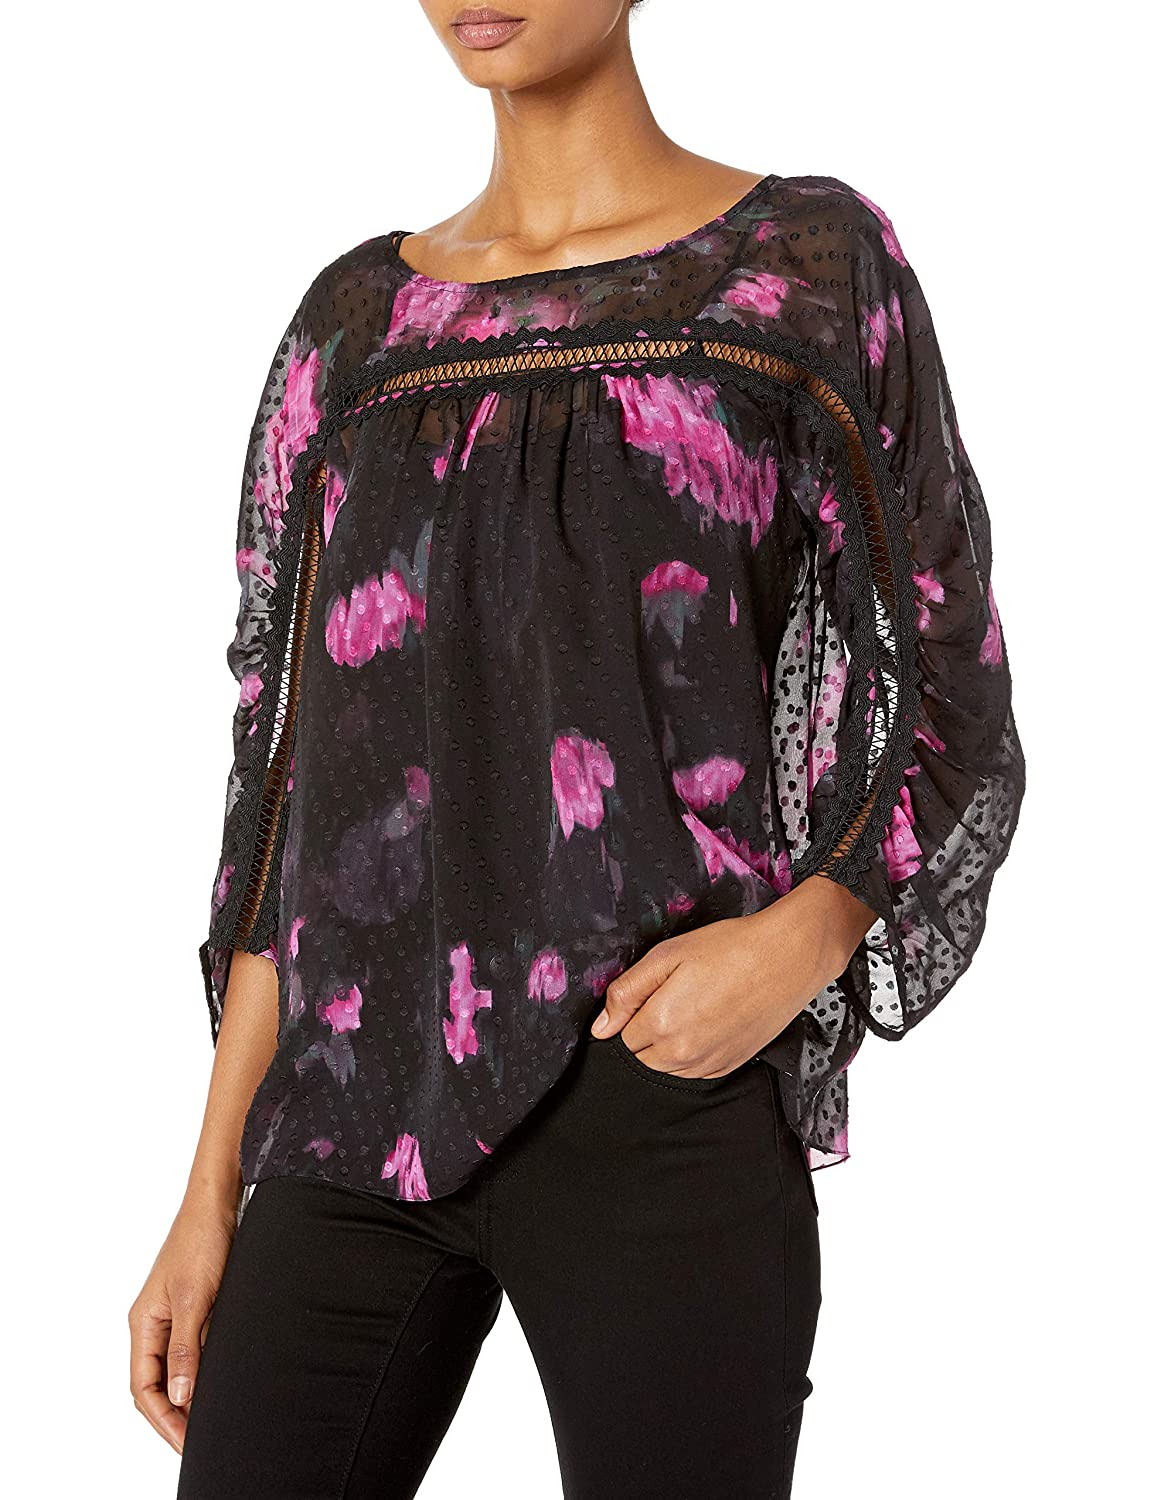 Tracy Reese Womens Shirred Blouse in Black Cactus Warm Floral